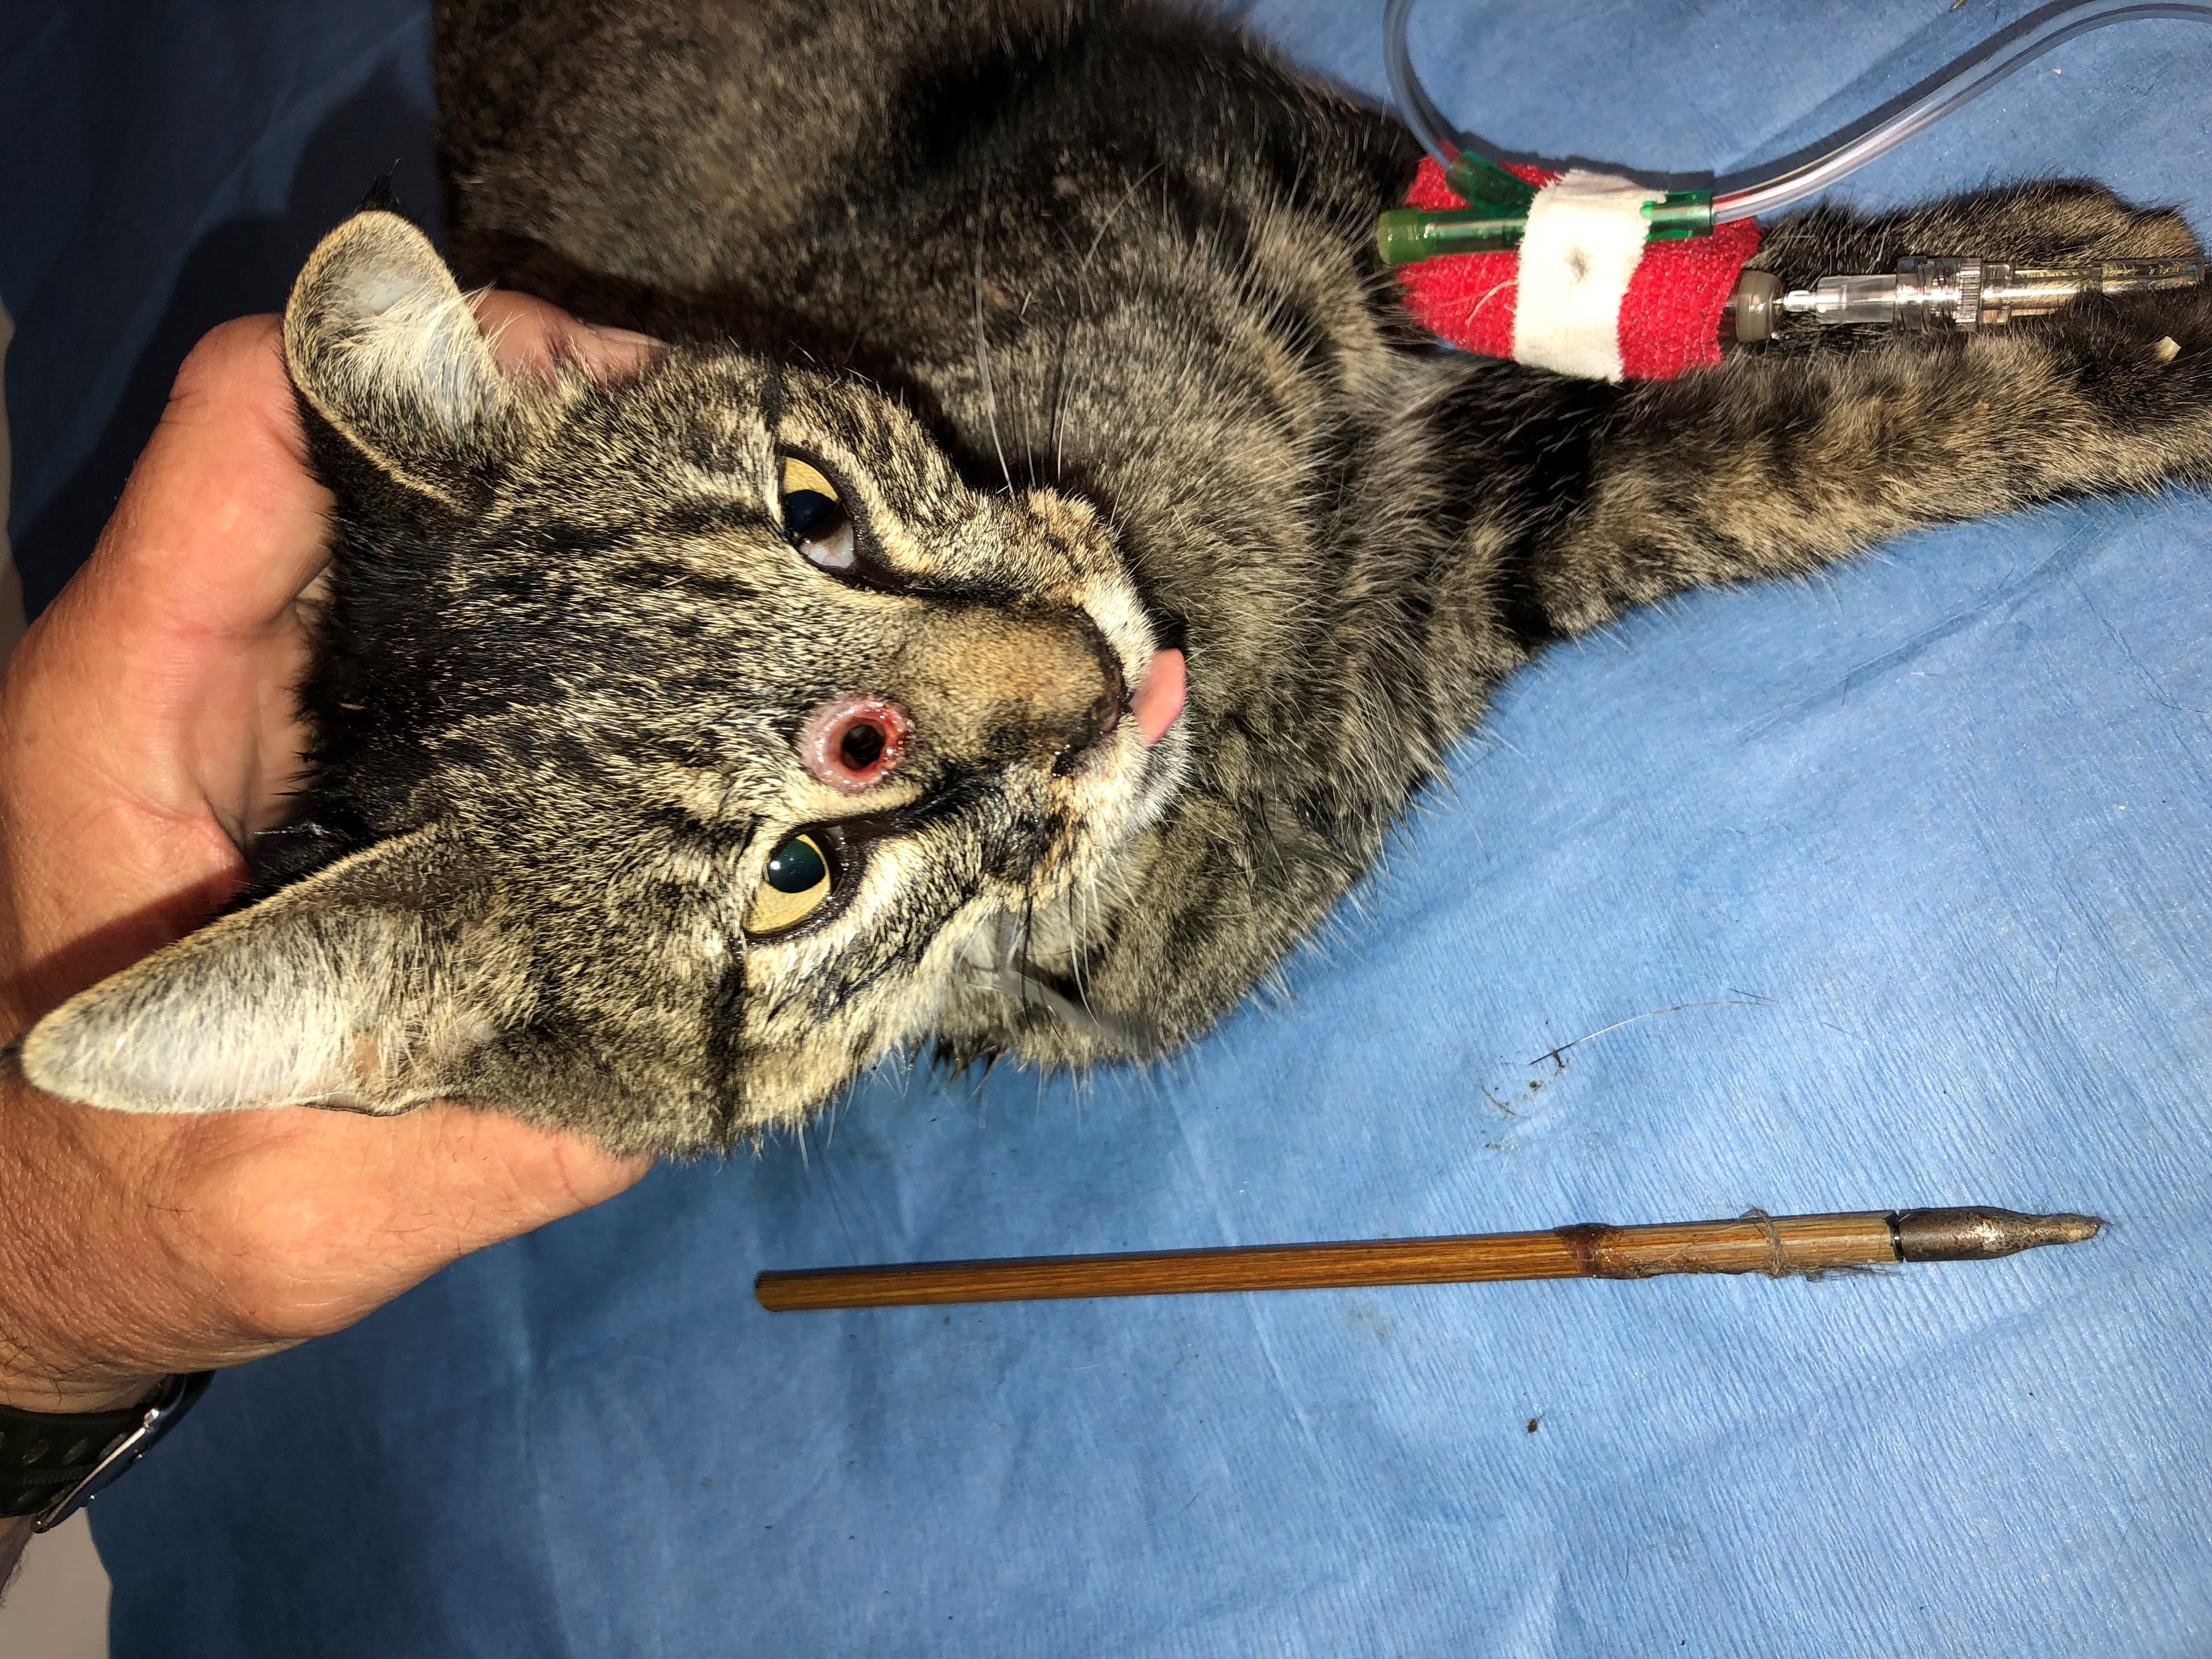 Dr. Rob Conner of All Creatures Veterinary Hospital recently treated a cat that was shot through the face with an arrow. The cat survived the incident and is up for adoption.